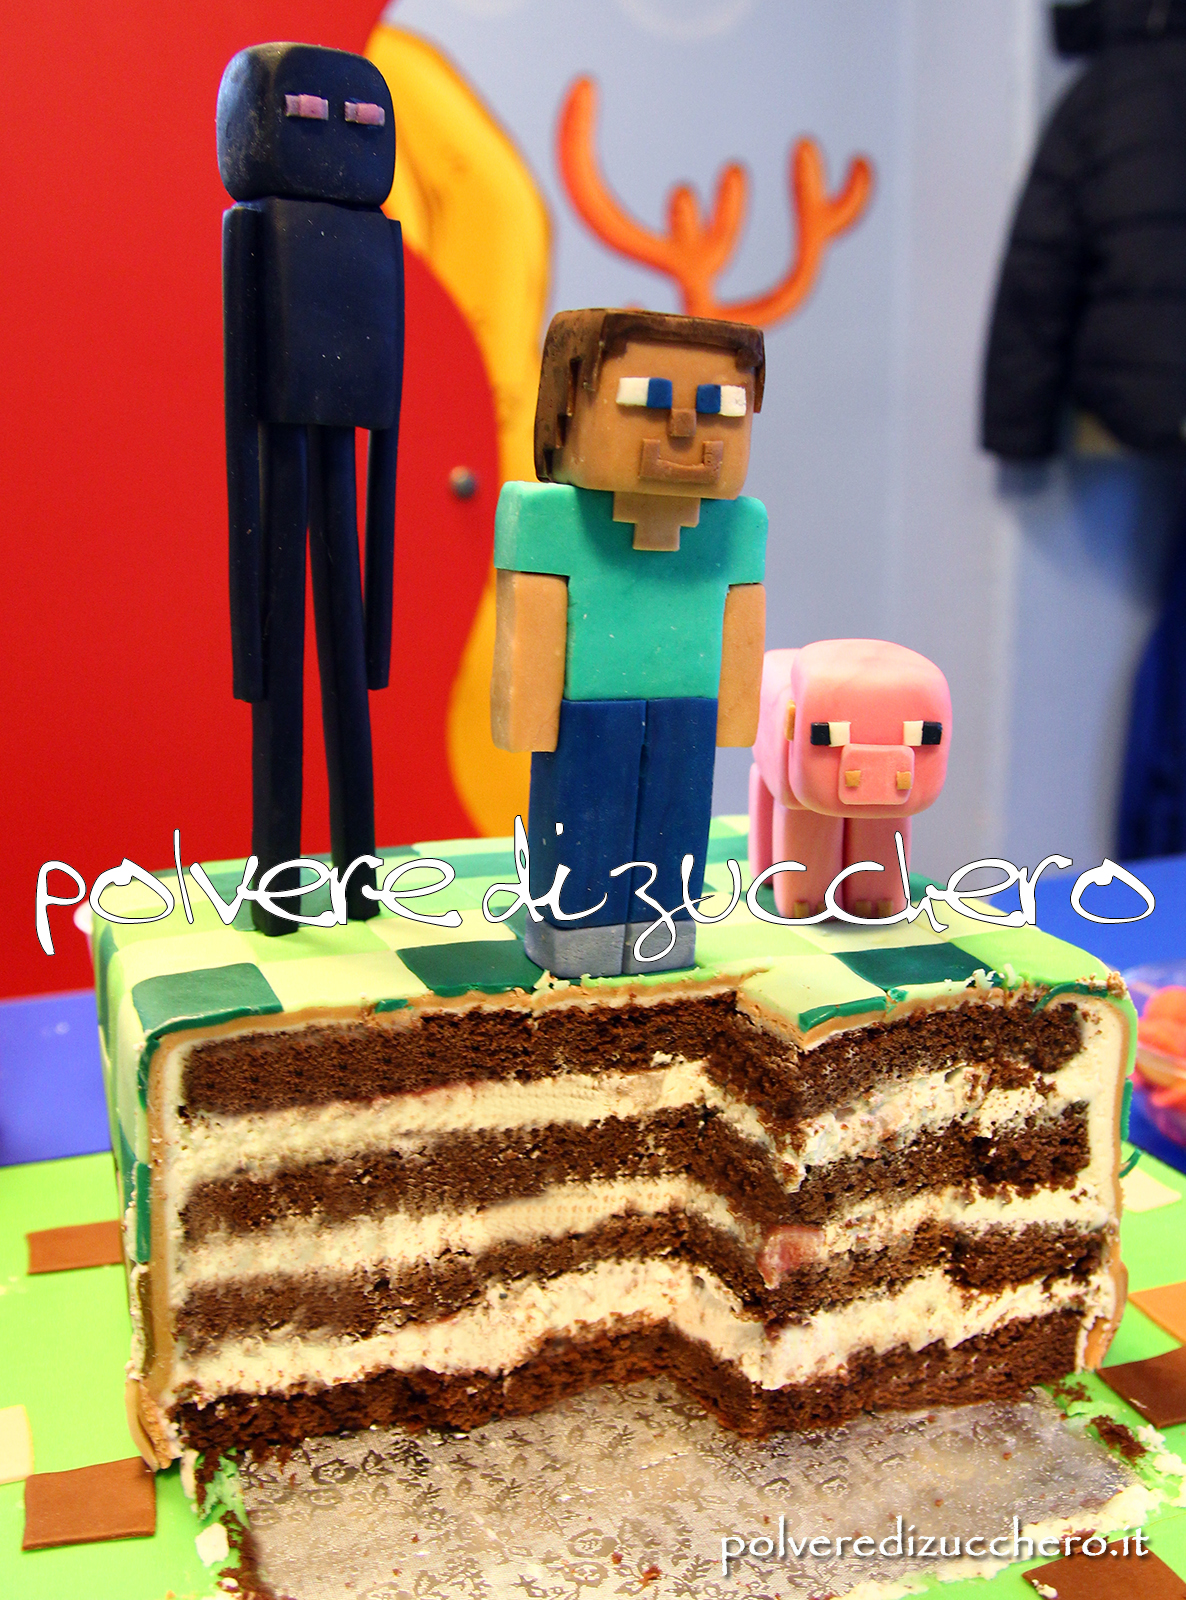 torta decorata cake design minecraft xbox playstation pasta di zucchero torta sweet table polvere di zucchero